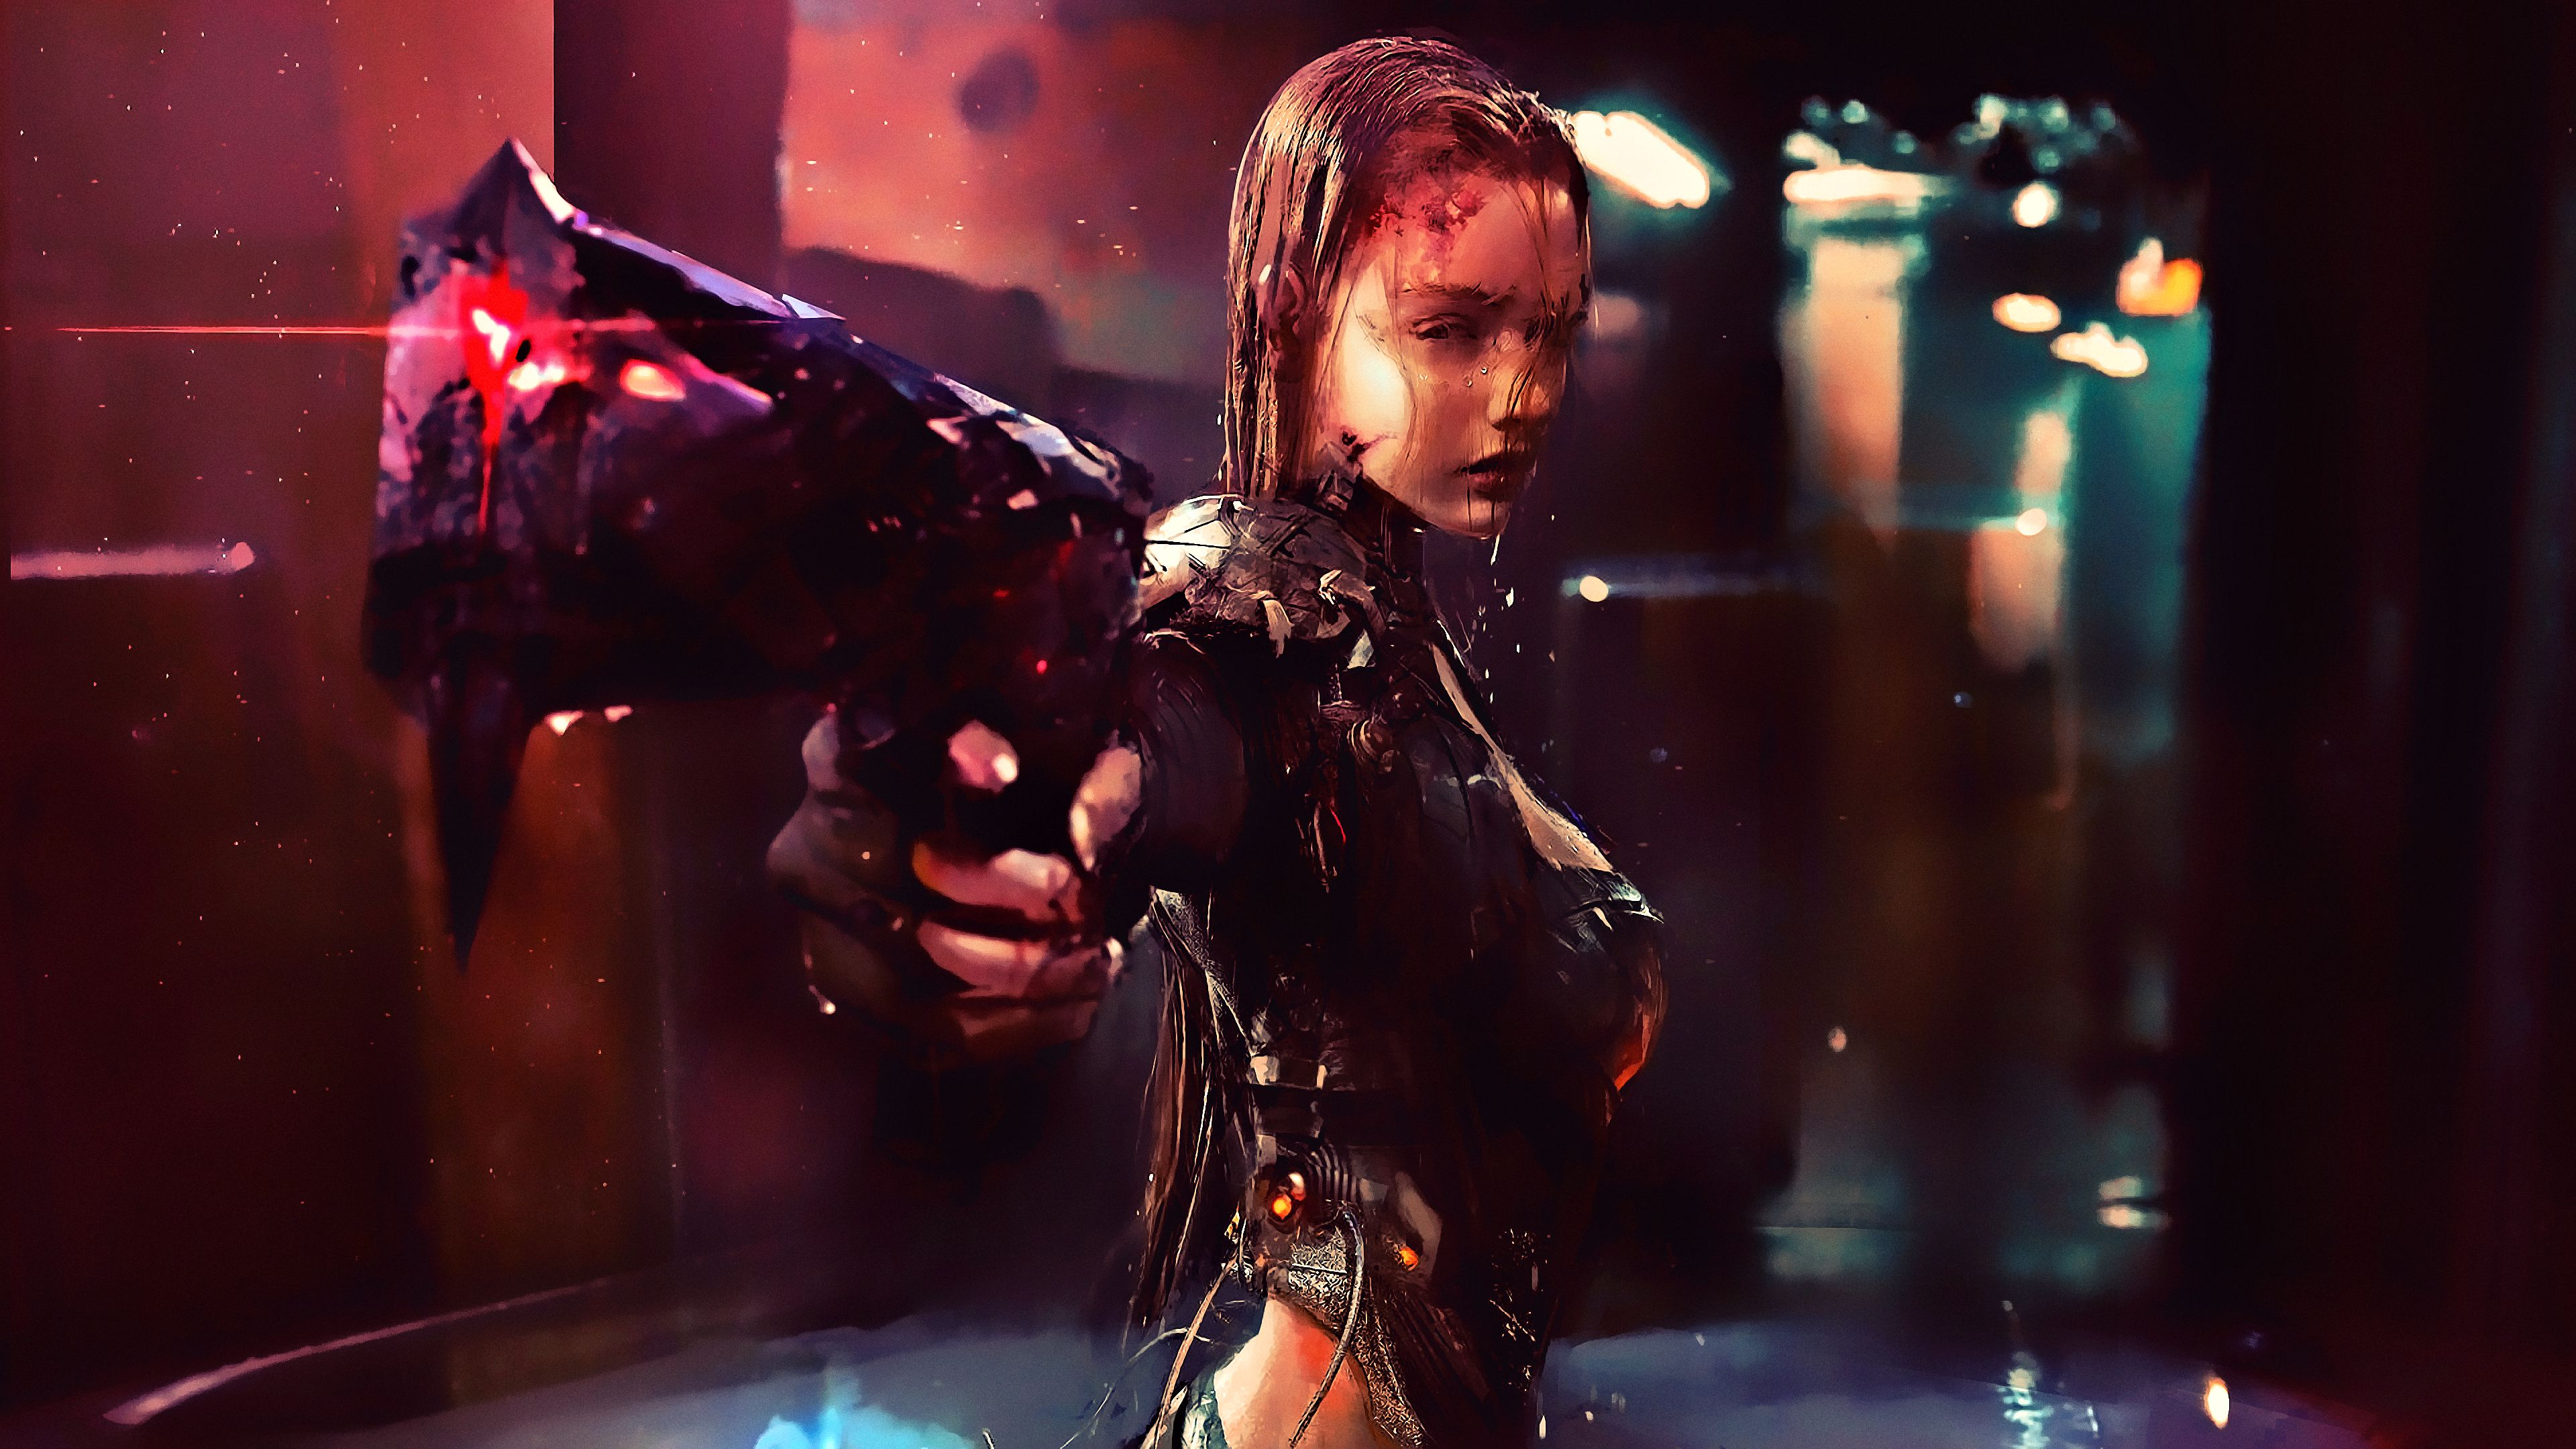 Warrior Girl Cyberpunk Futuristic Artwork Scifi Wallpapers Hd Wallpapers Digital Art Wallpapers Cyberpunk Wallpapers In 2020 Futuristic City Cyberpunk Hd Wallpaper